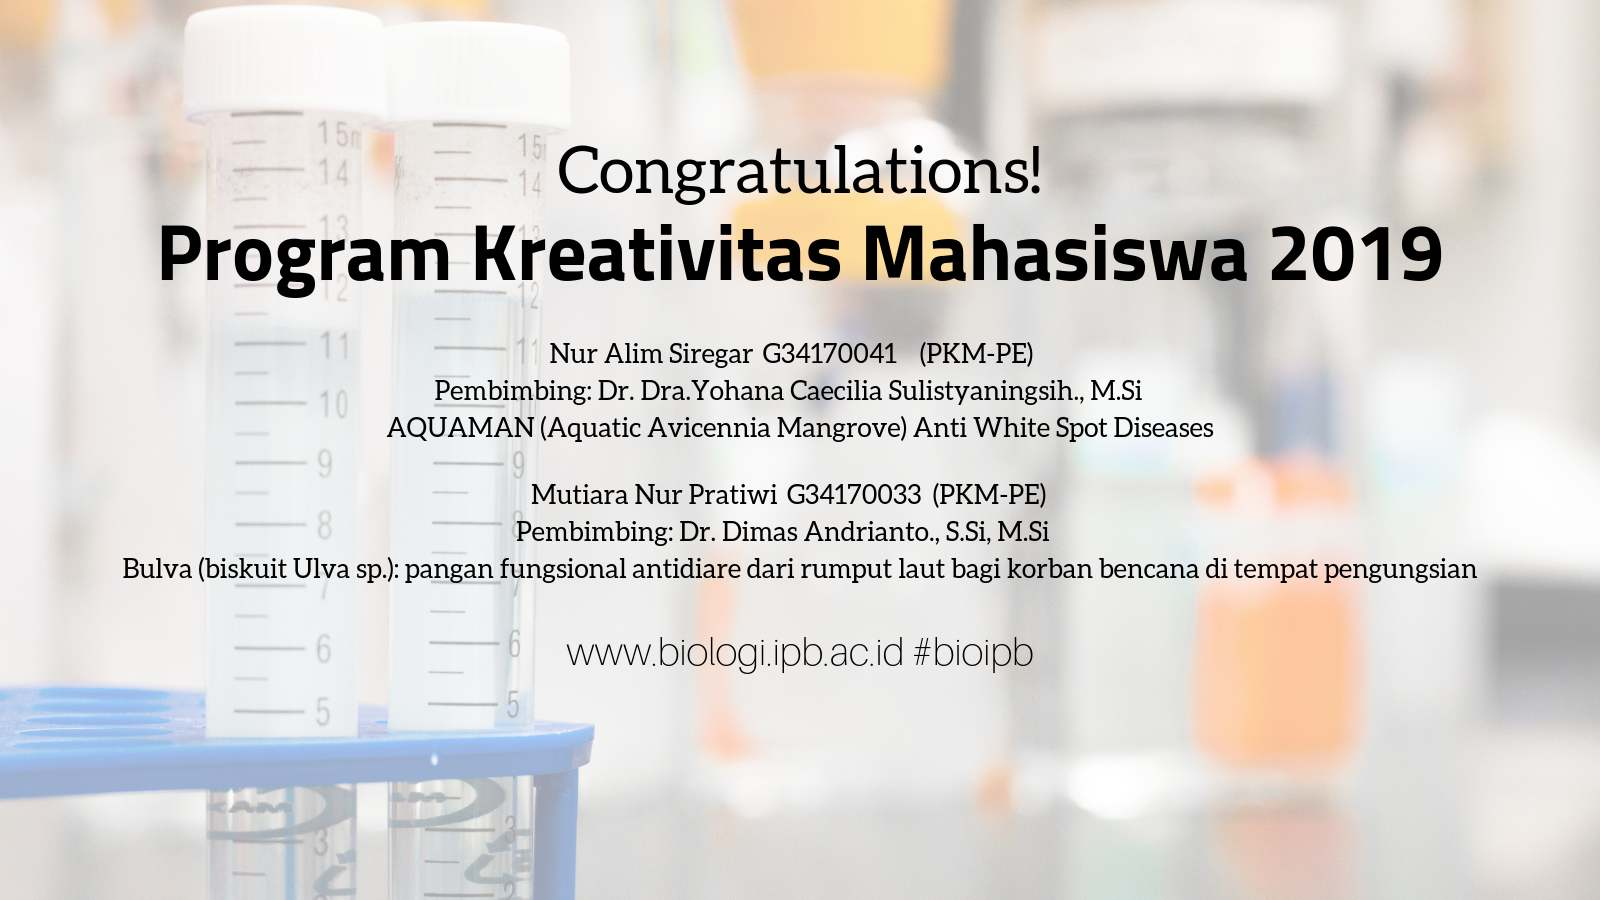 Congratulations! The grantees of PKM 2019